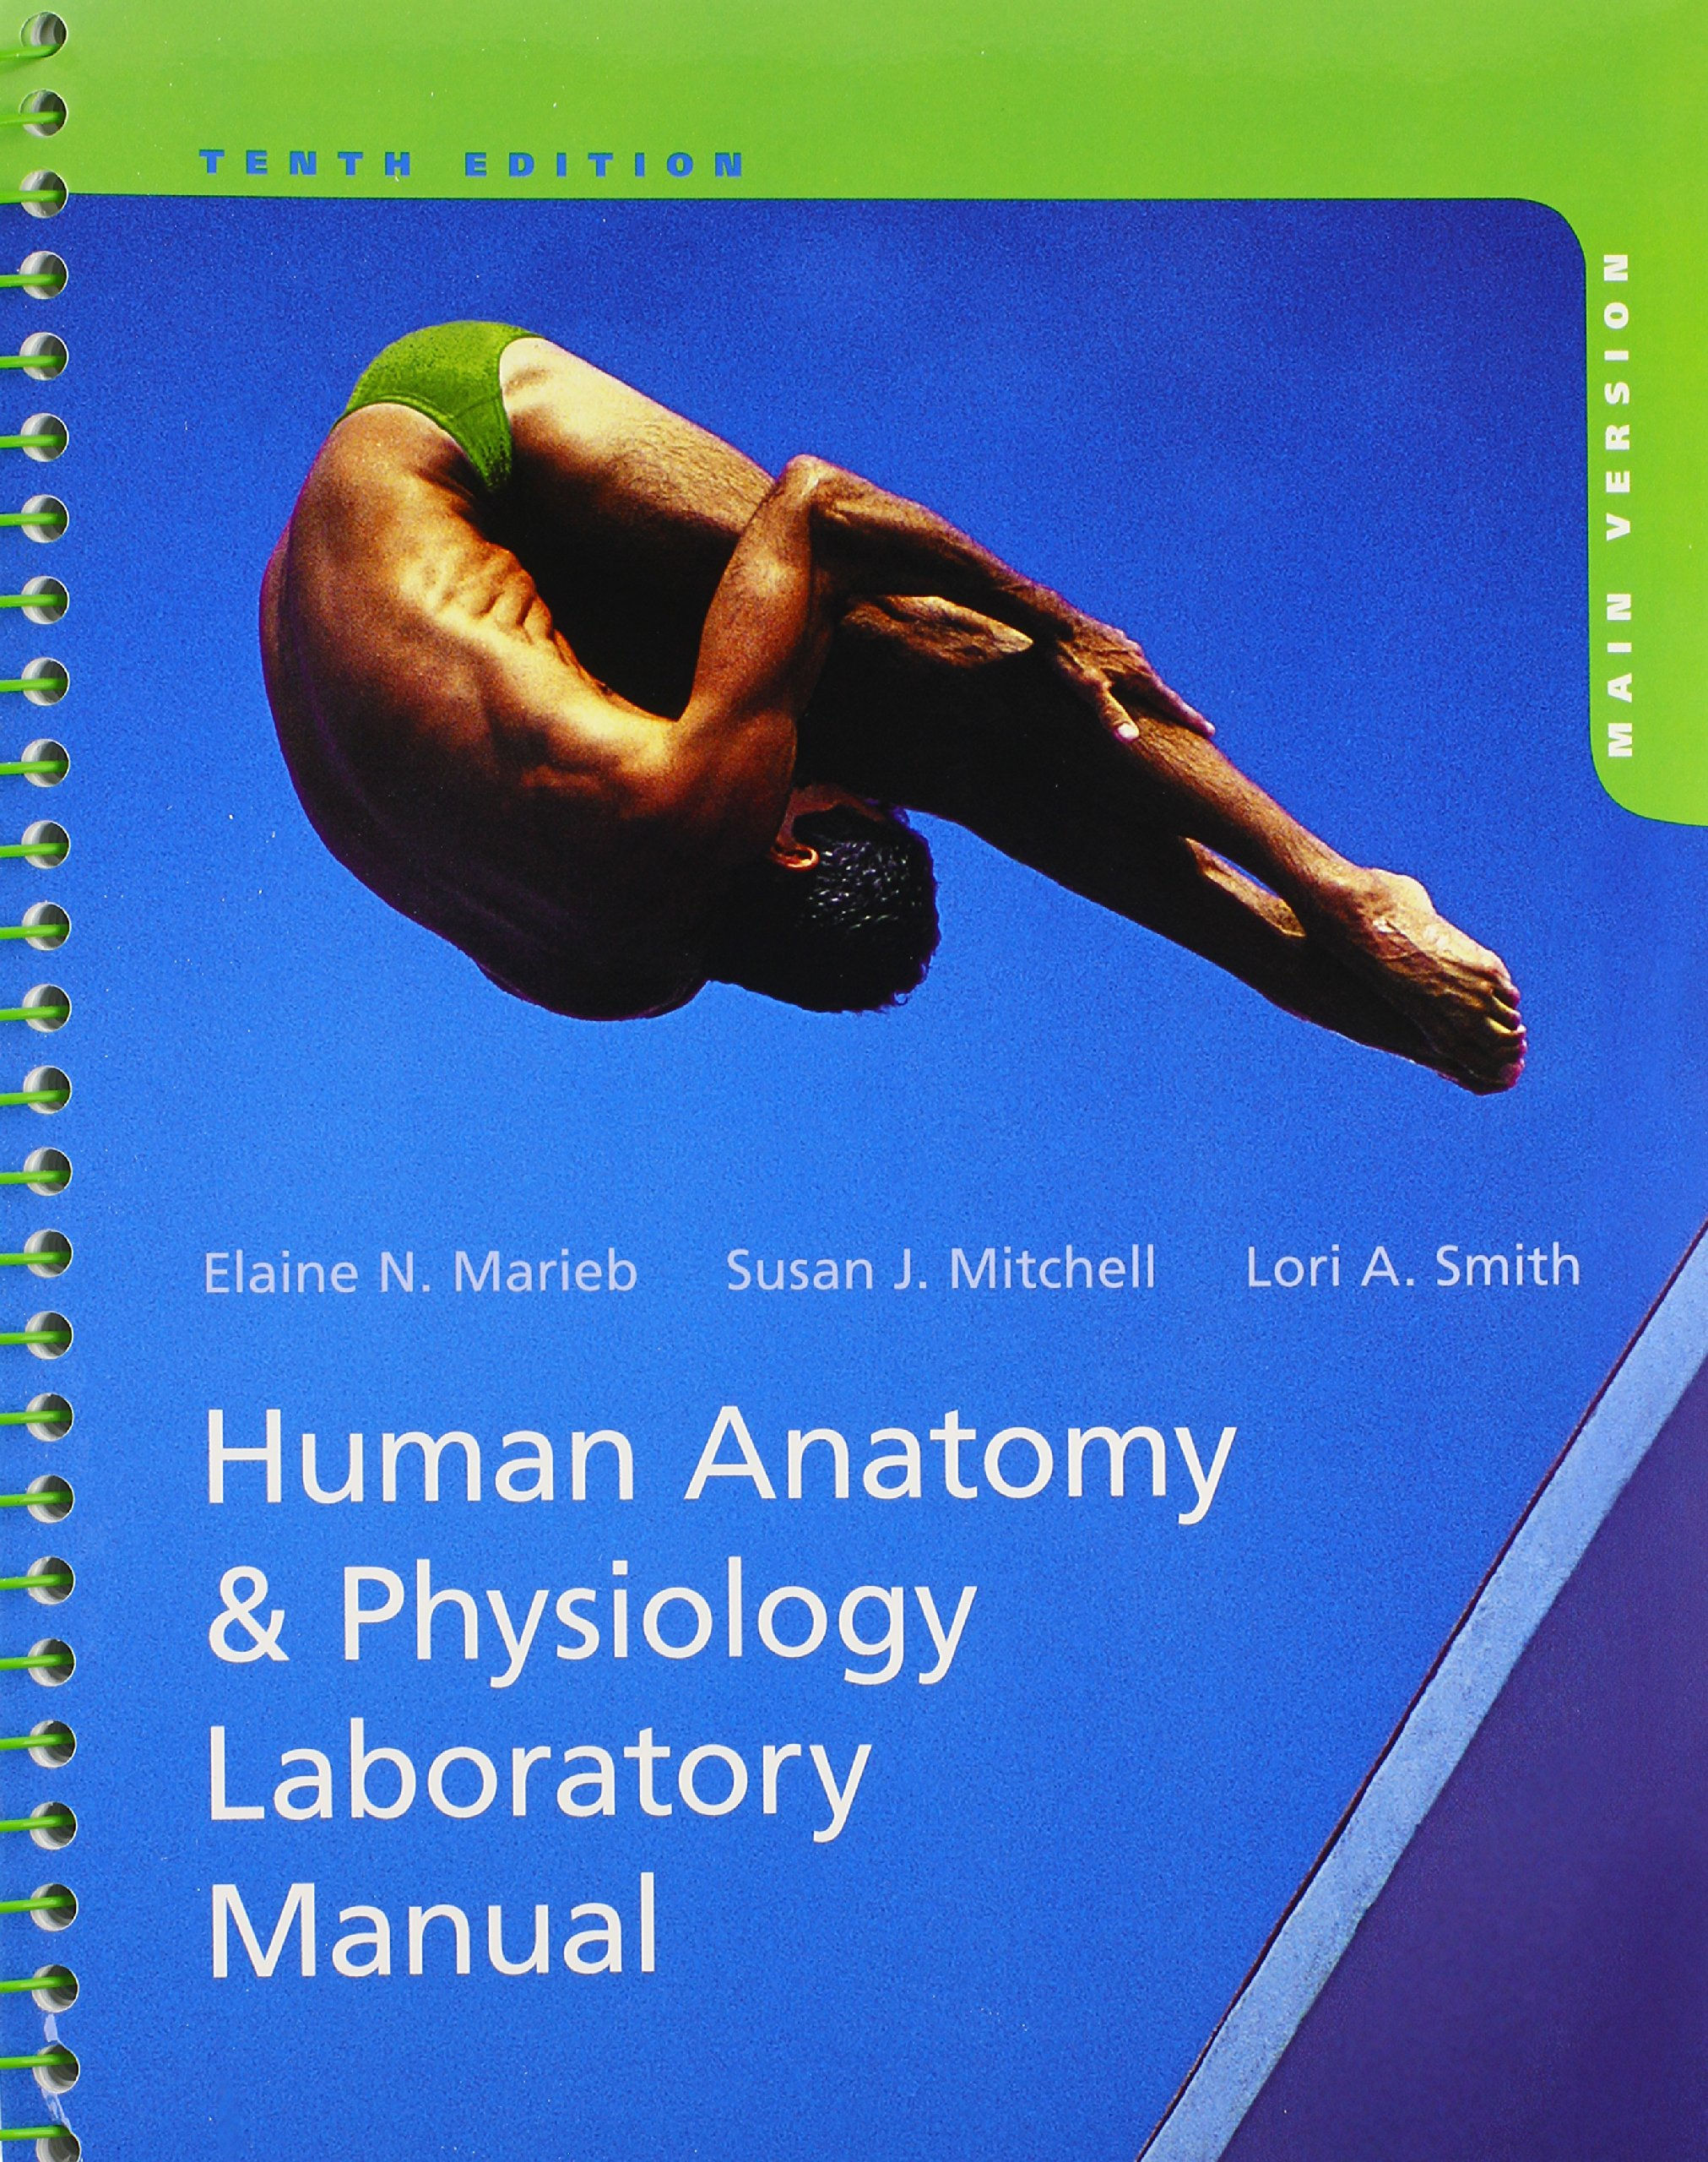 Human Anatomy & Physiology, Main Version: Elaine N. Marieb, Susan J ...